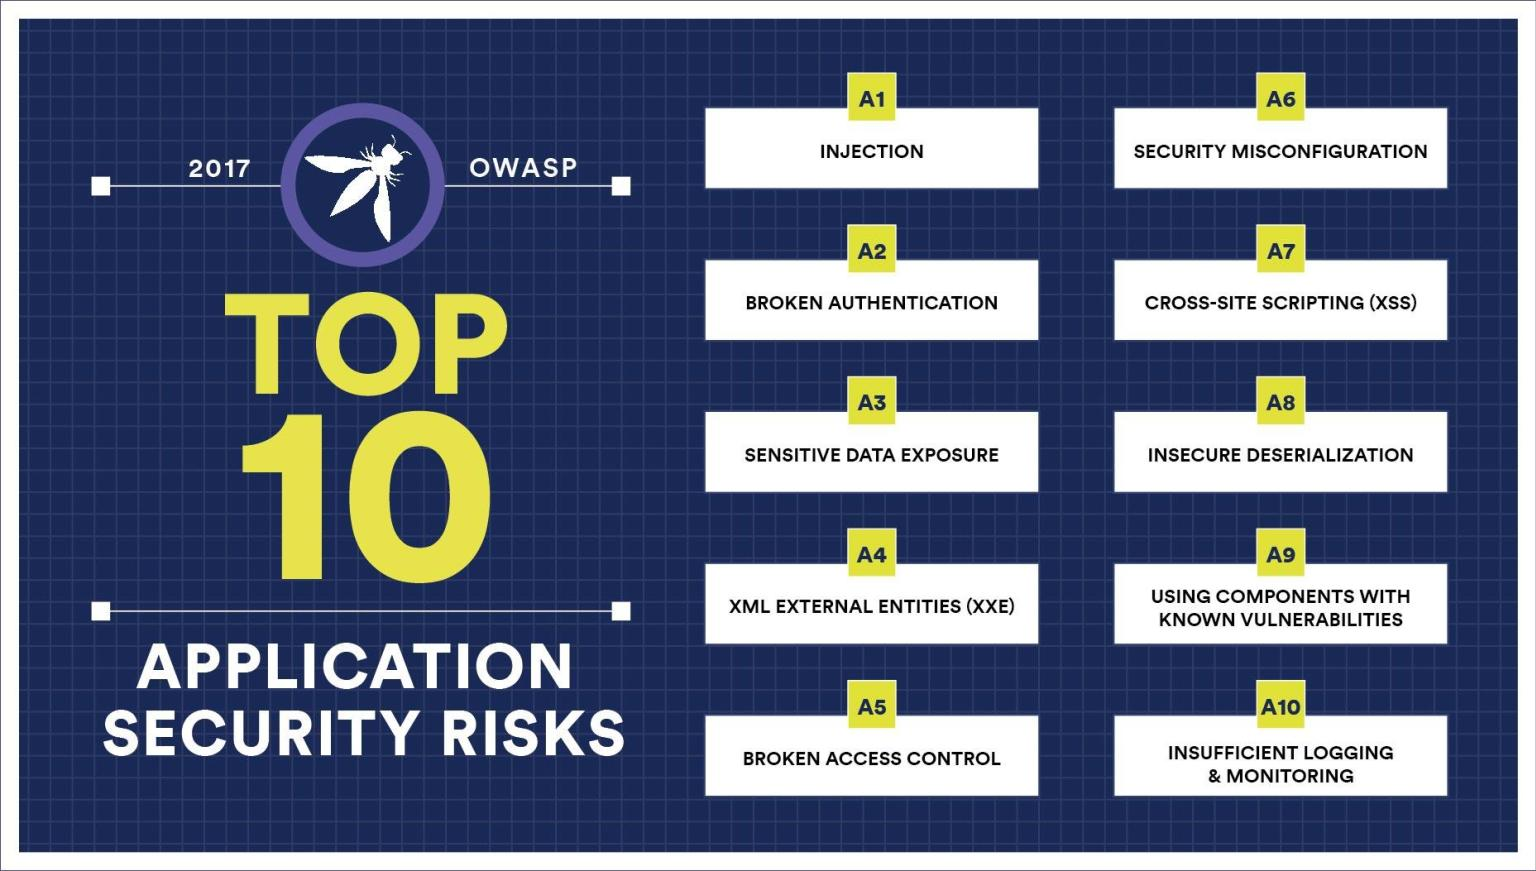 The current version of OWASP Top 10 vulnerabilities (2017)